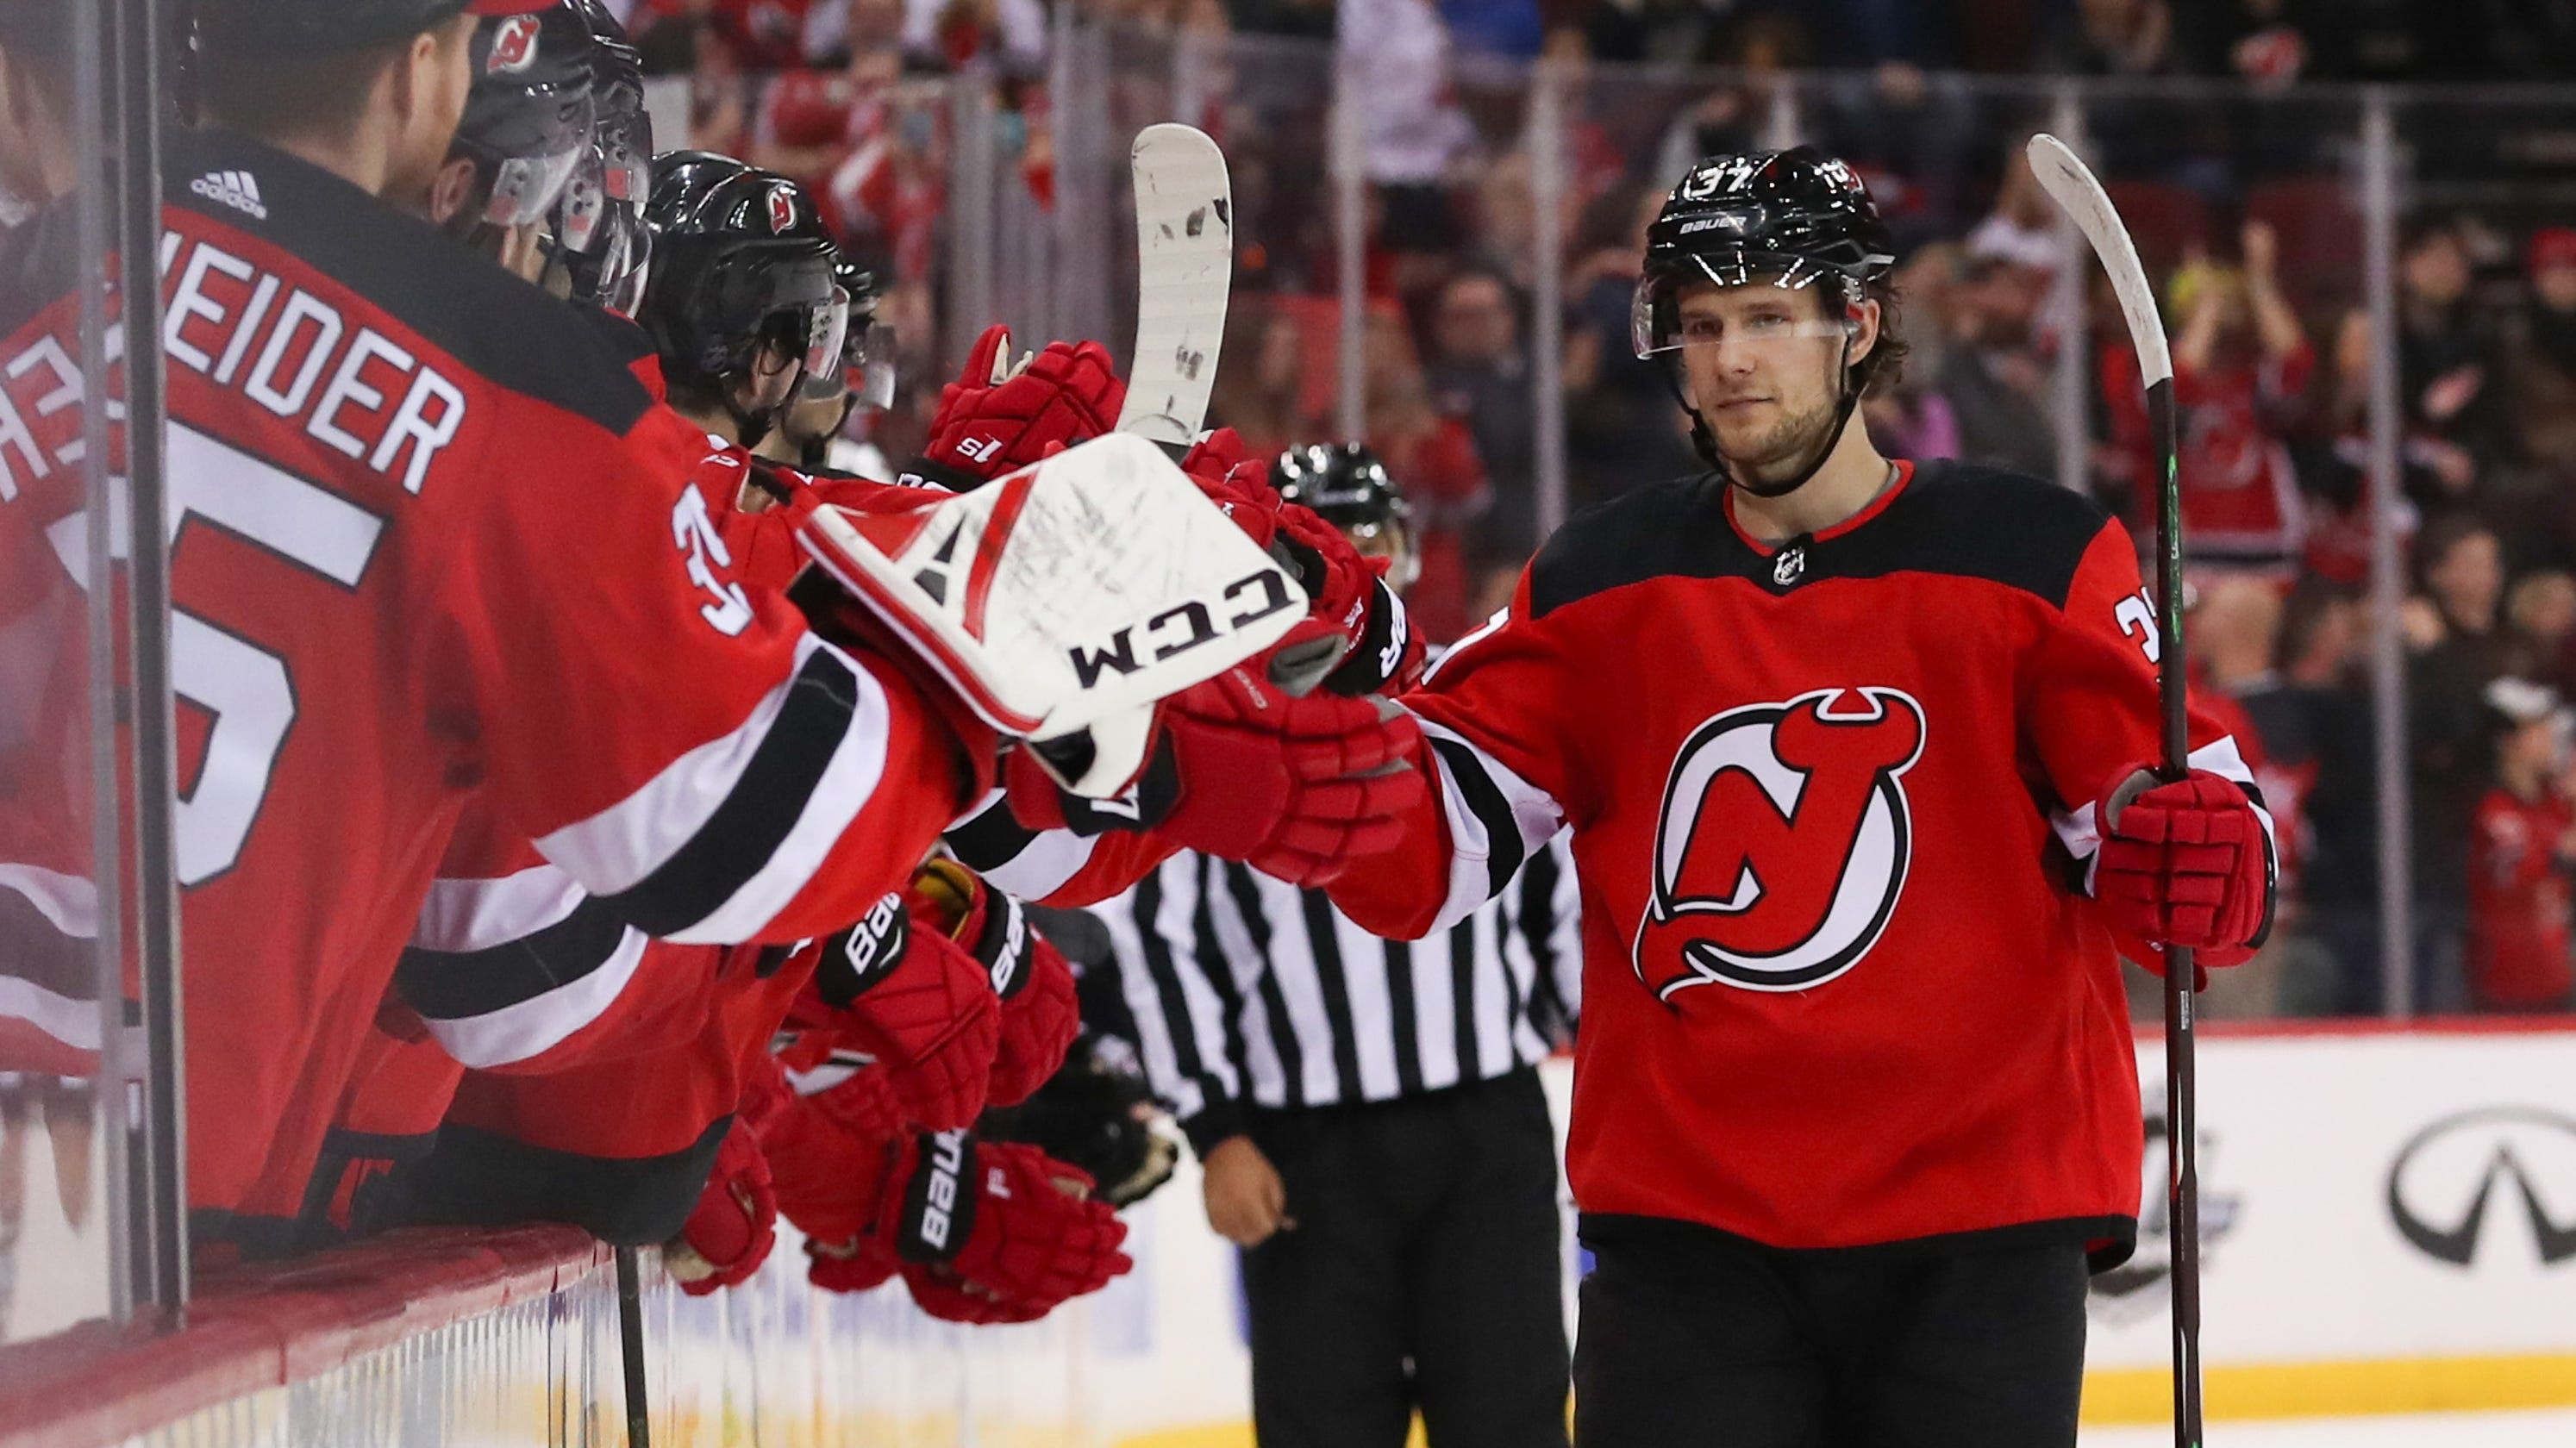 1721e4c9f Pavel Zacha s shootout goal gives NJ Devils 2-1 win over Coyotes